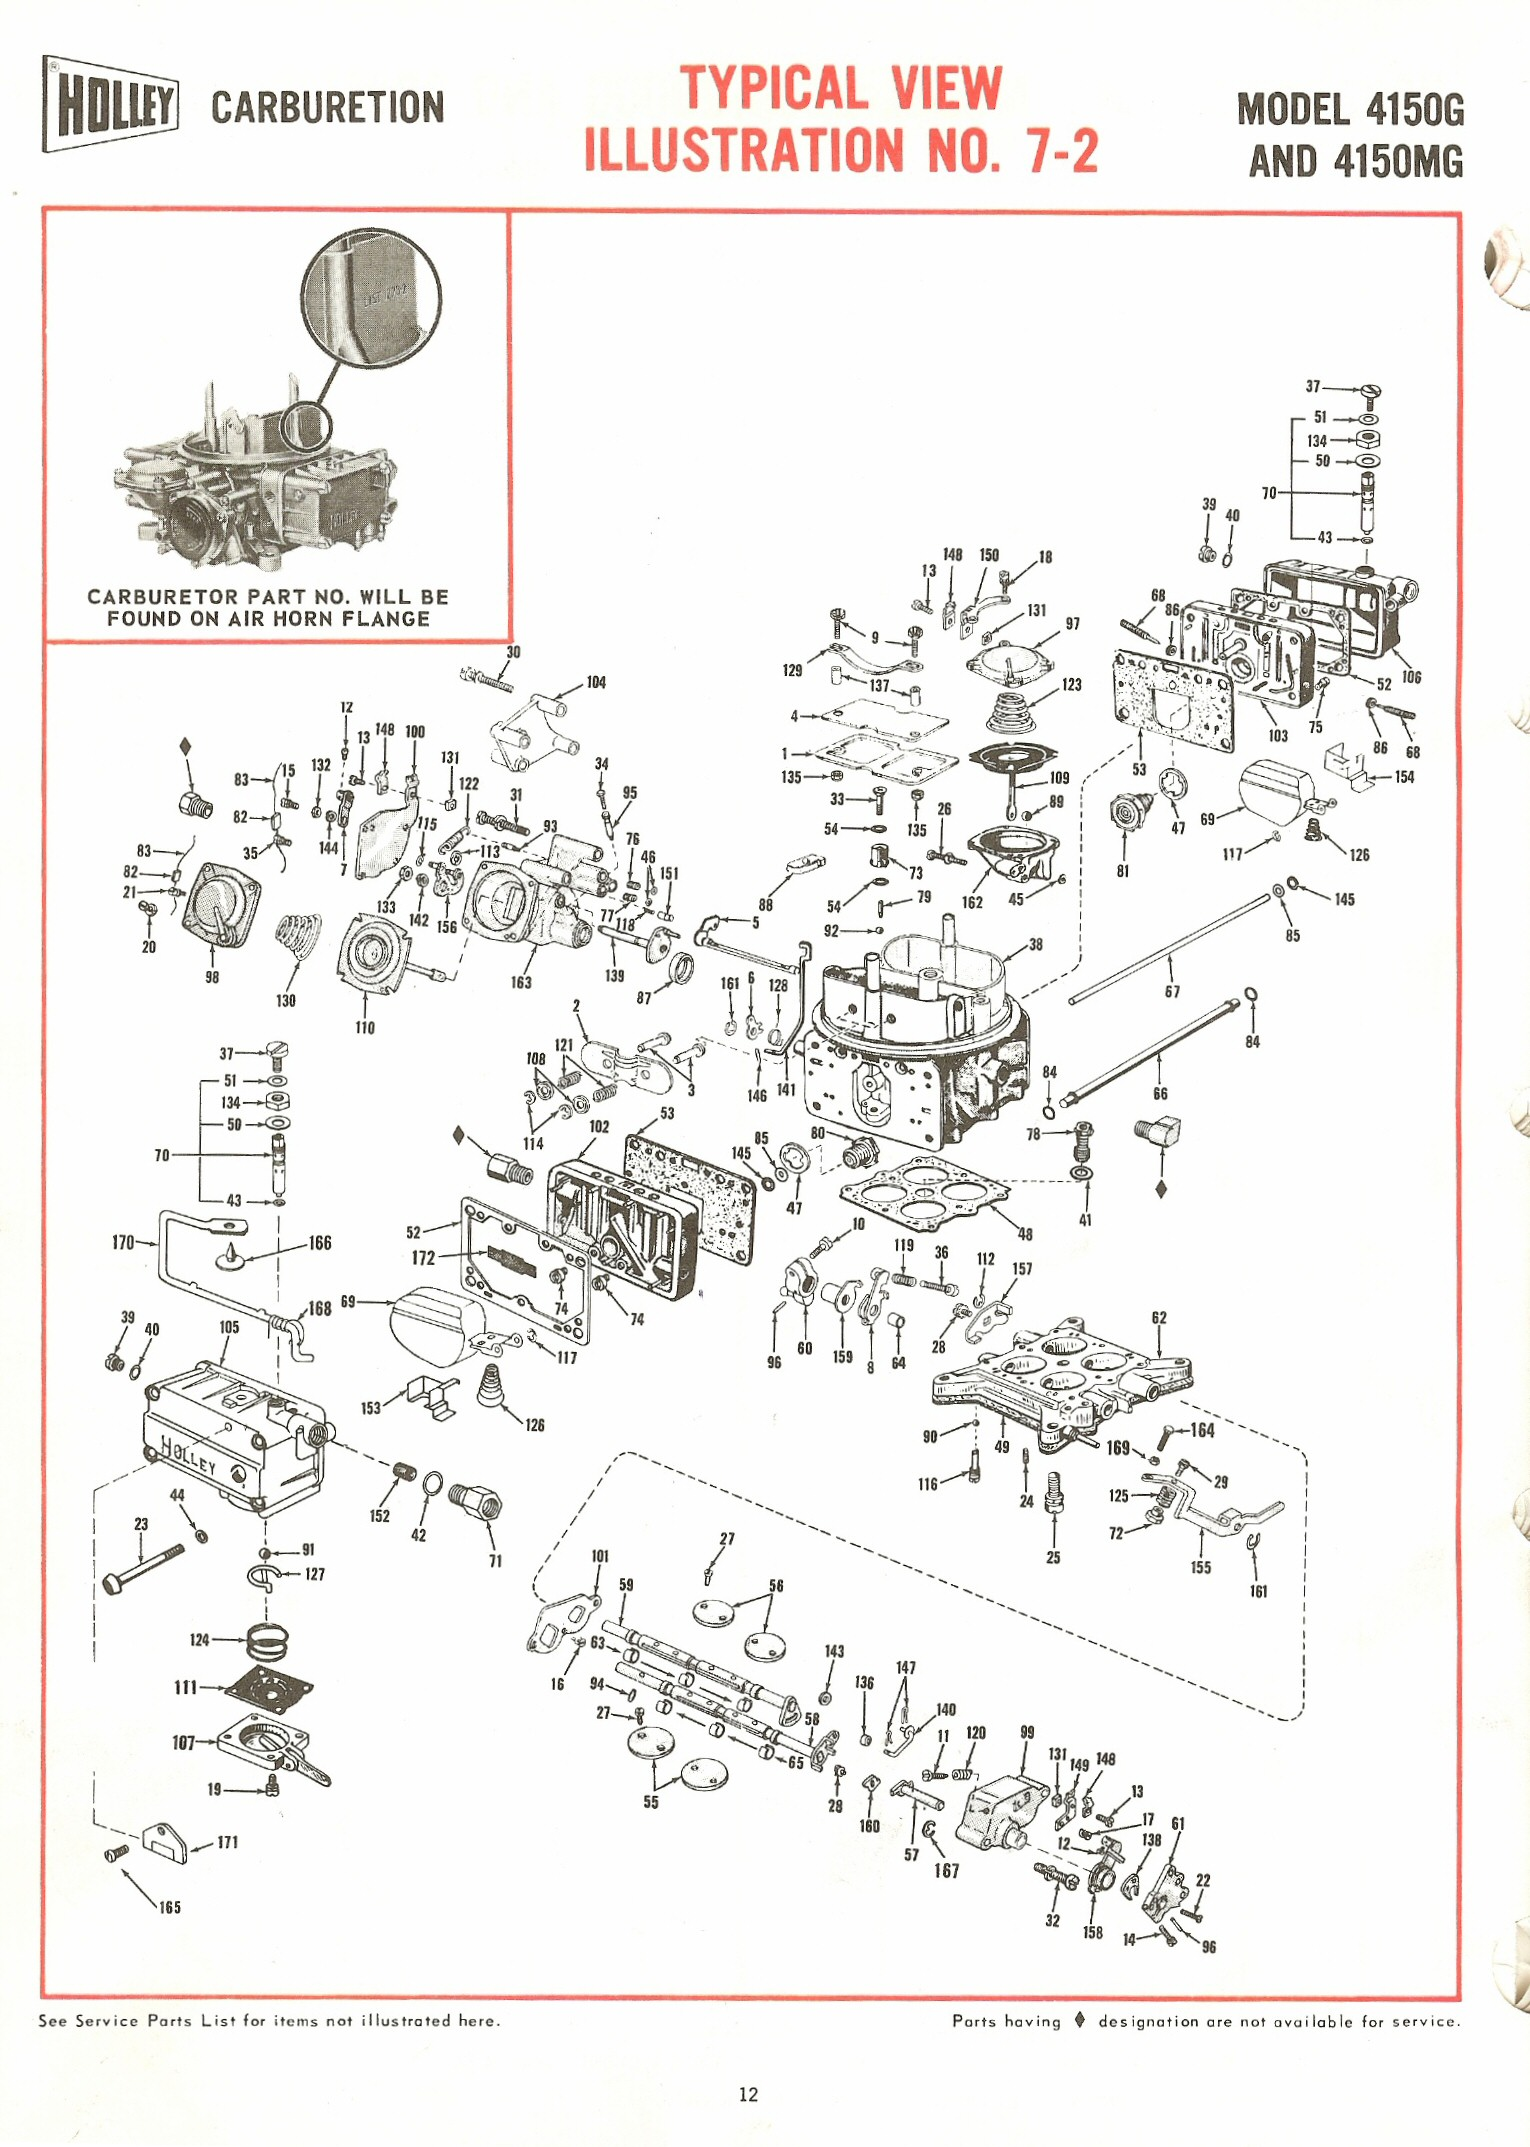 Holley Parts Diagram Manual Guide Wiring 2300 2300g 2300mg Exploded Diagrams The Old Car Street Avenger List Elsalvadorla 4150 5200